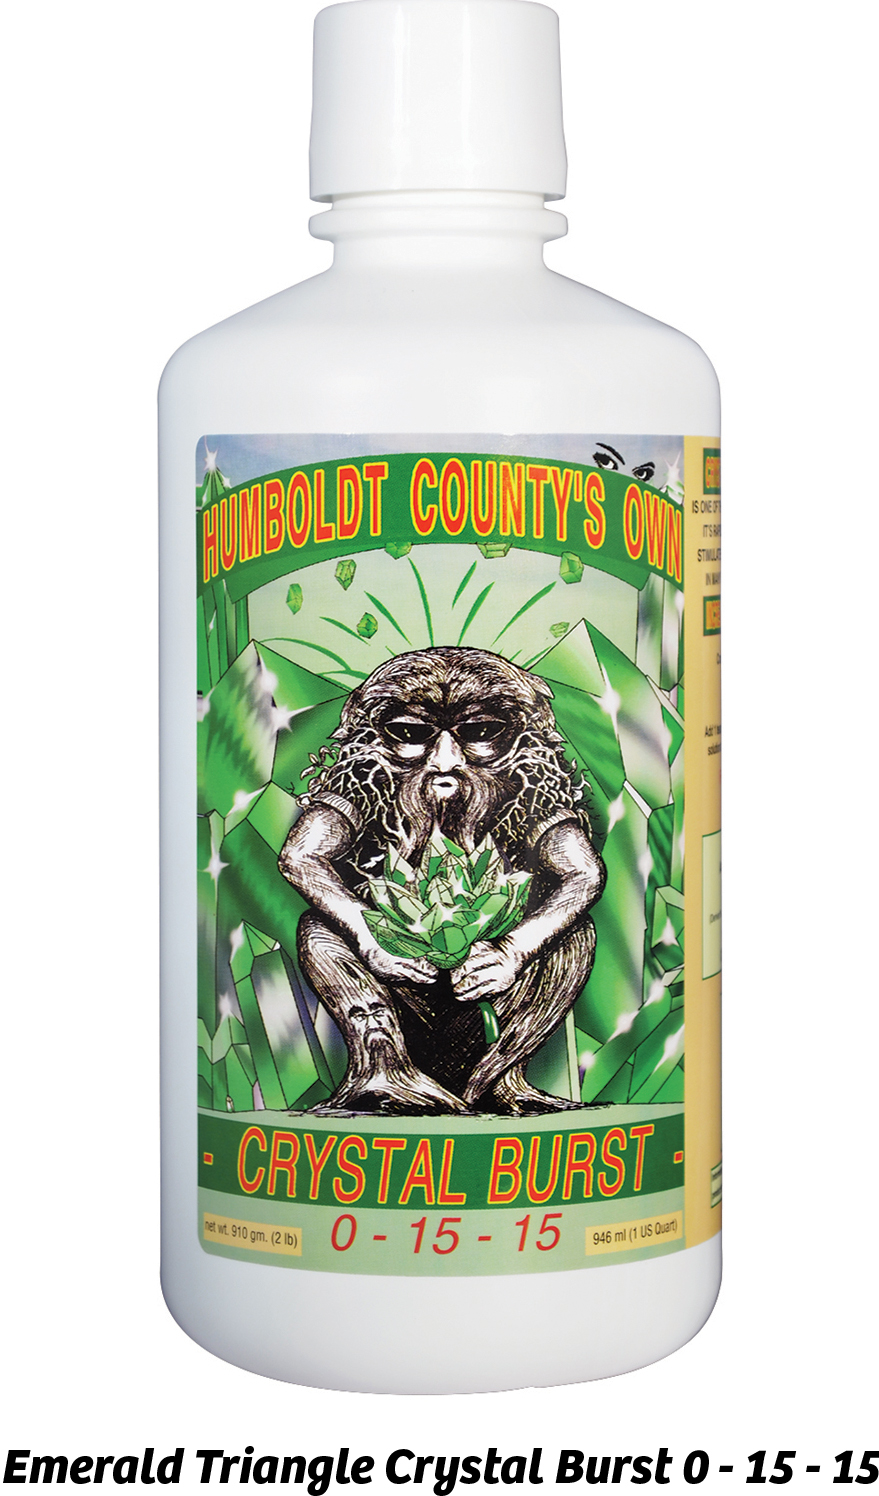 Emerald Triangle Crystal Burst 0 - 15 - 15